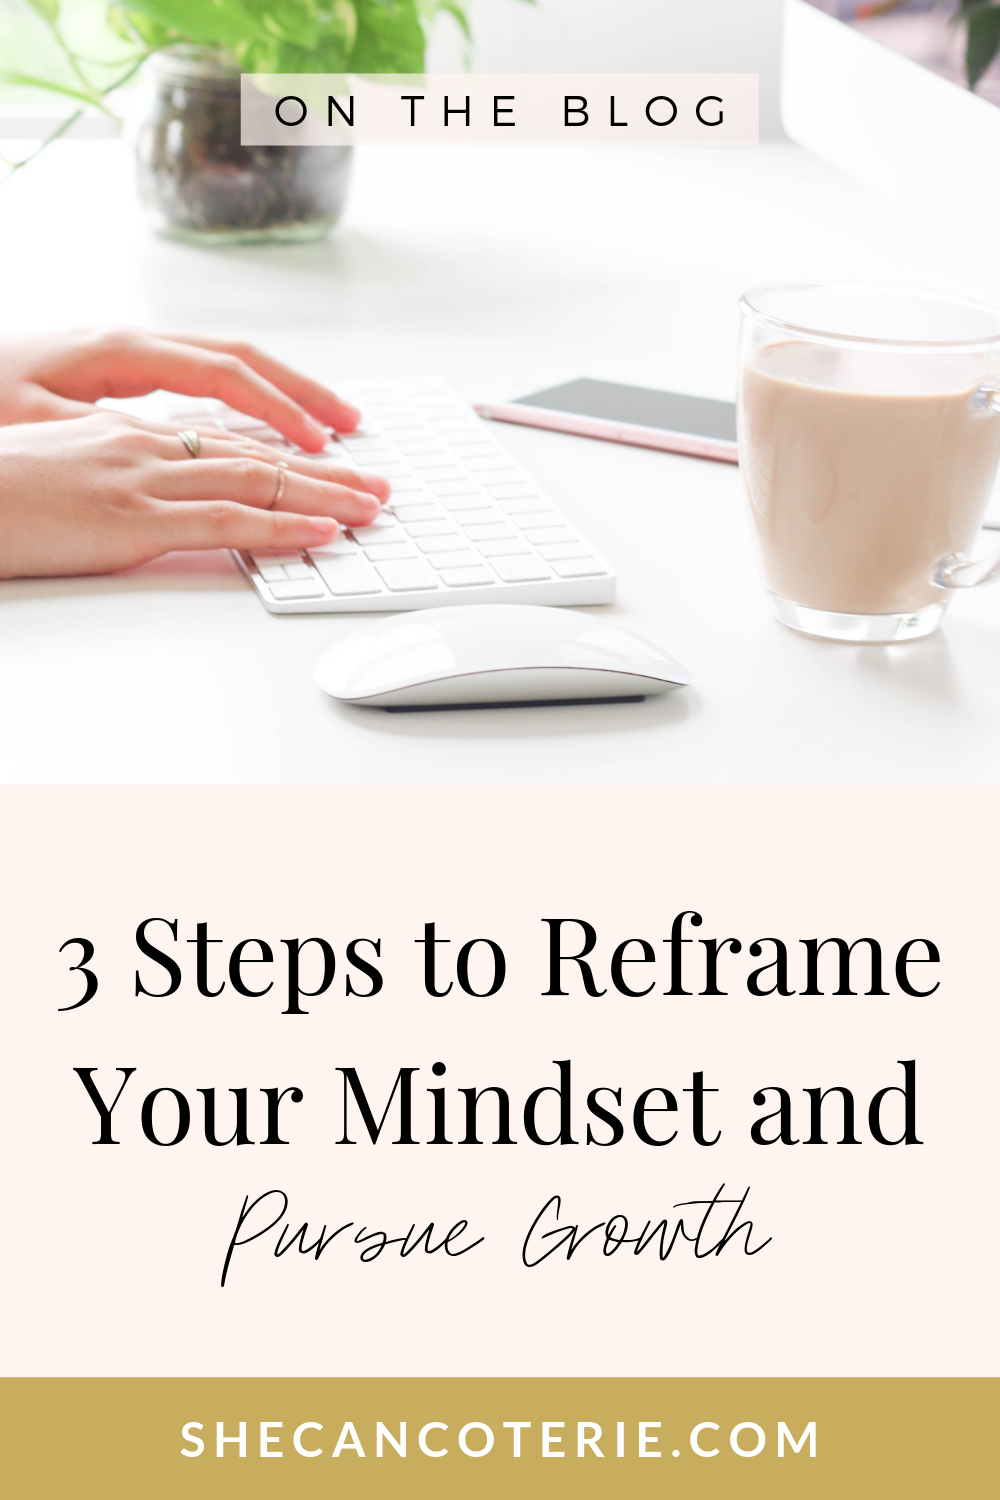 3 Steps to Reframe Your Mindset and Pursue Growth | SheCanCoterie.com